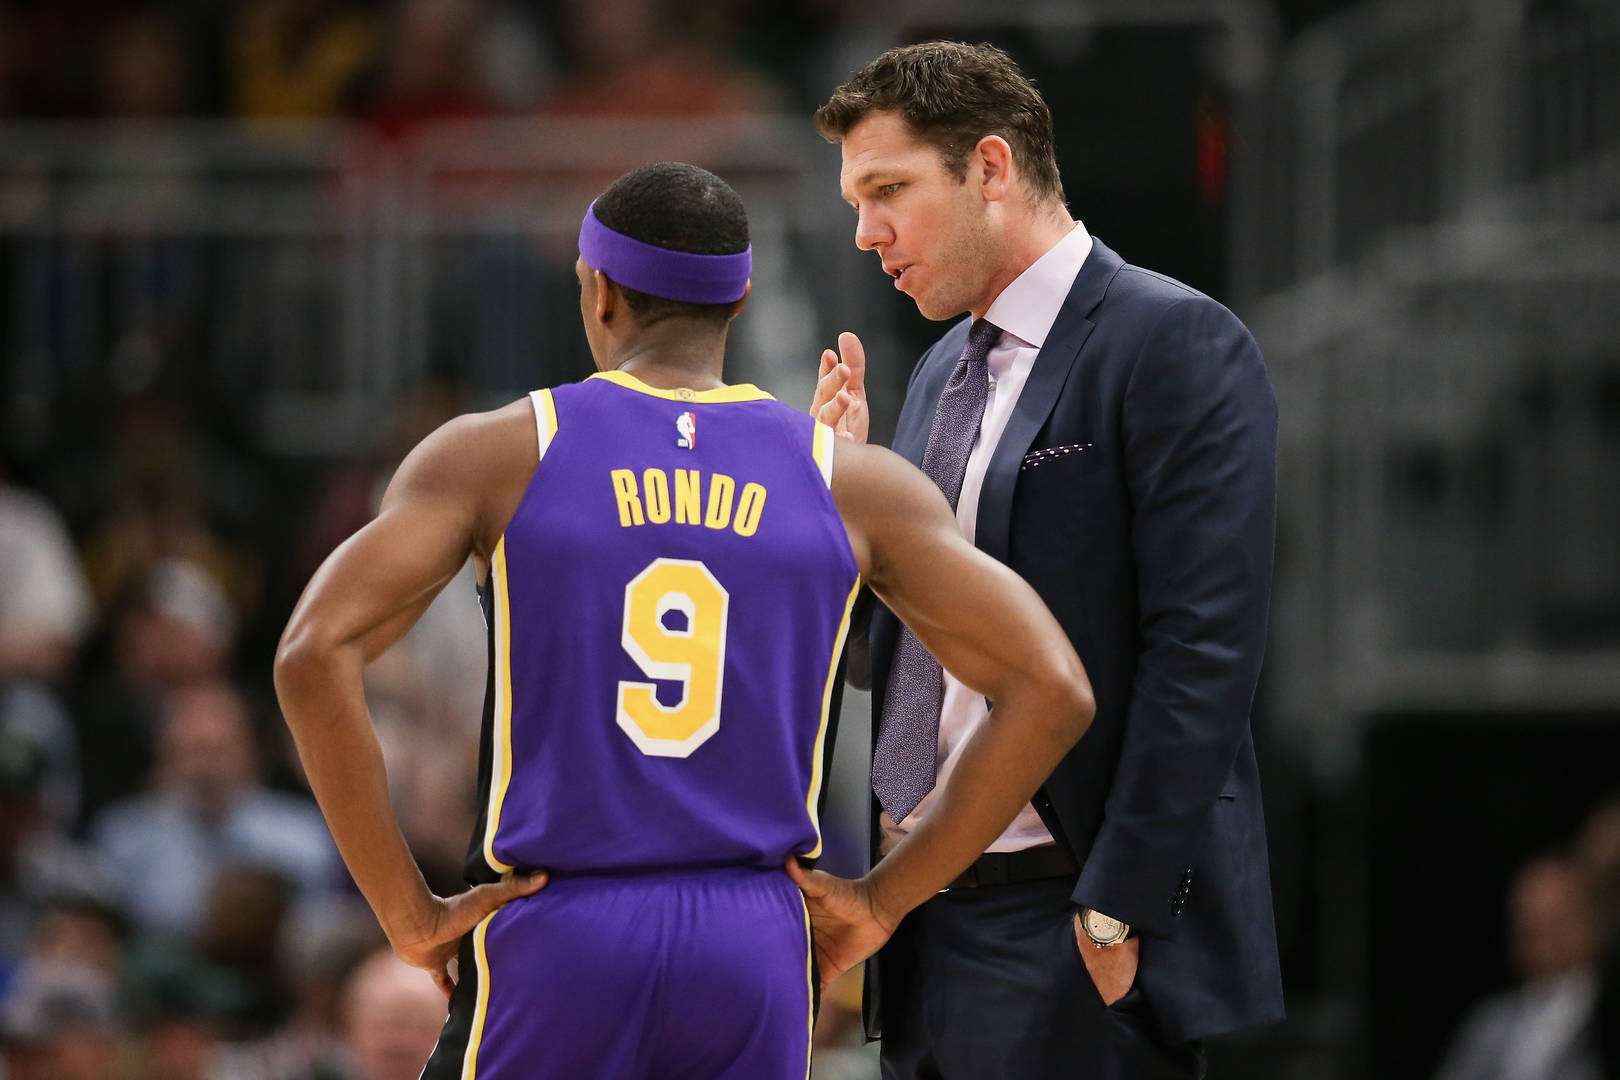 Kings Coach Luke Walton accused of sexual assault in lawsuit